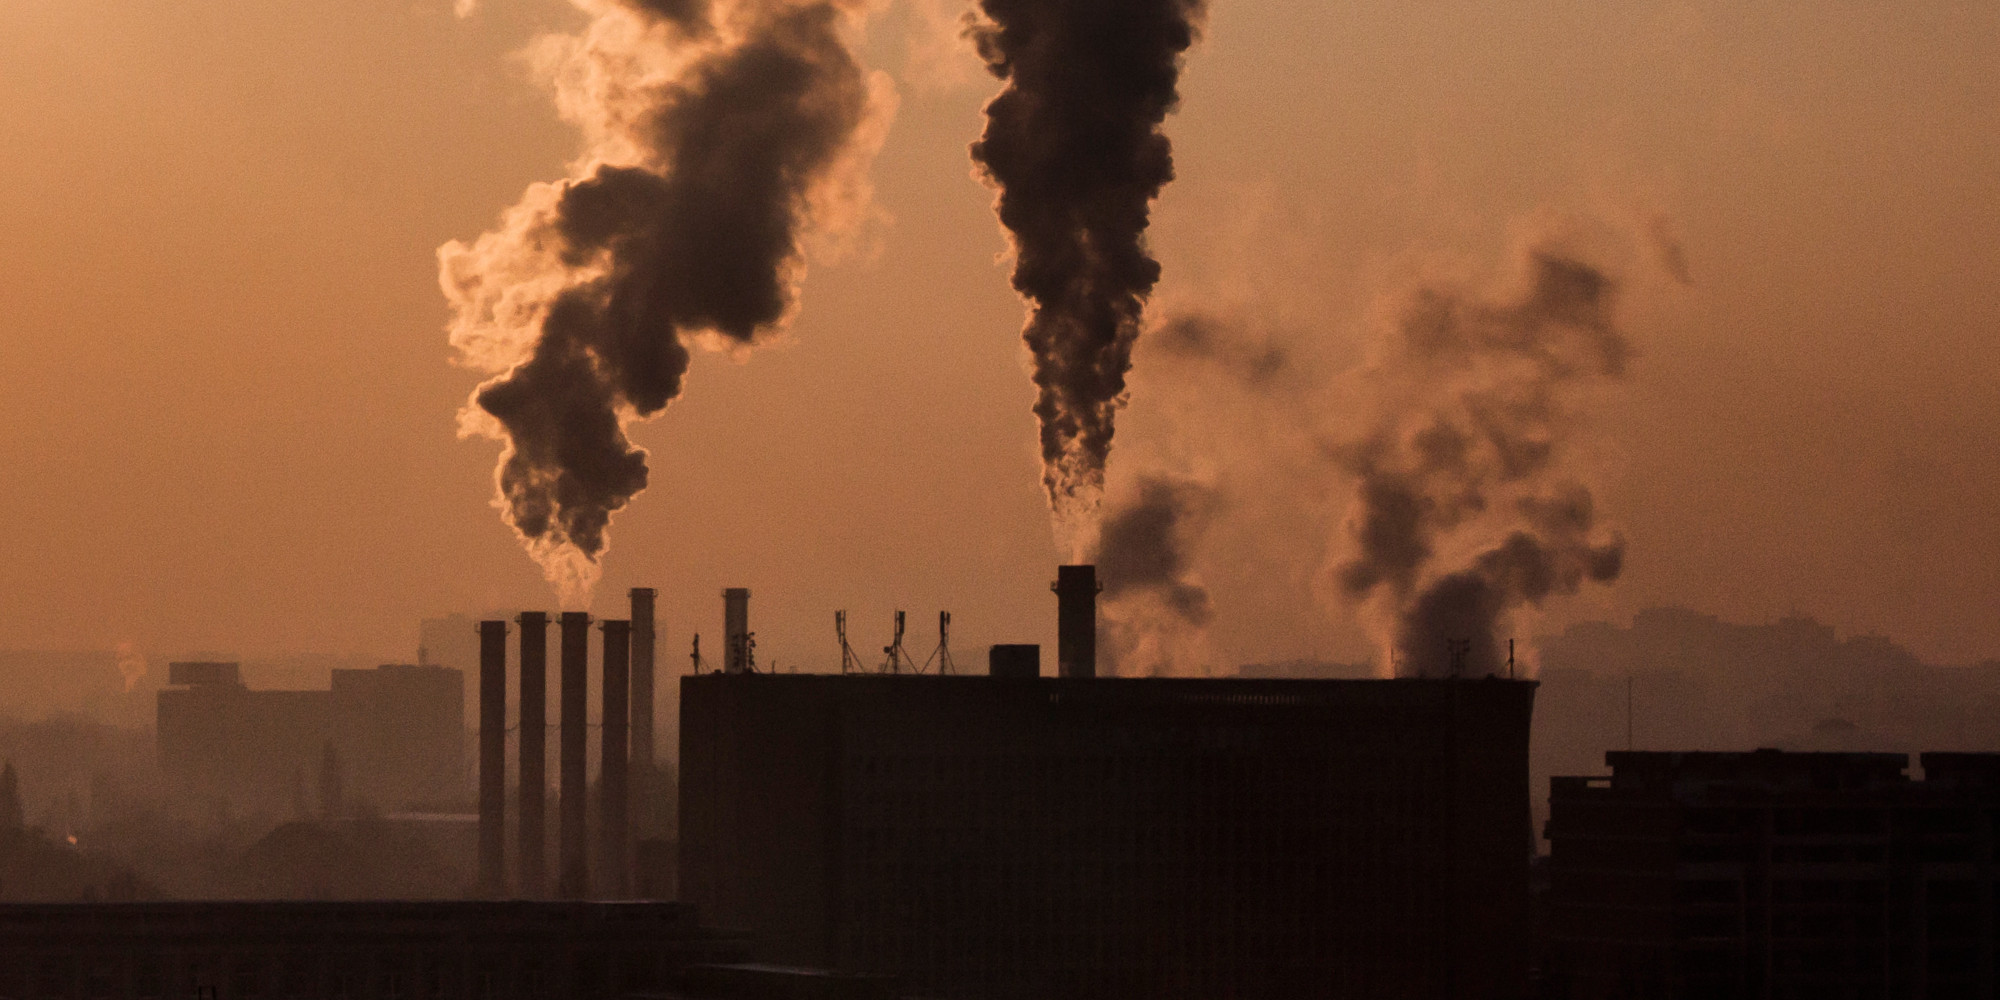 essays on atmospheric pollution Essays, term papers, book reports, research papers on environment free papers and essays on air pollution we provide free model essays on environment, air pollution reports, and term paper samples related to air pollution.